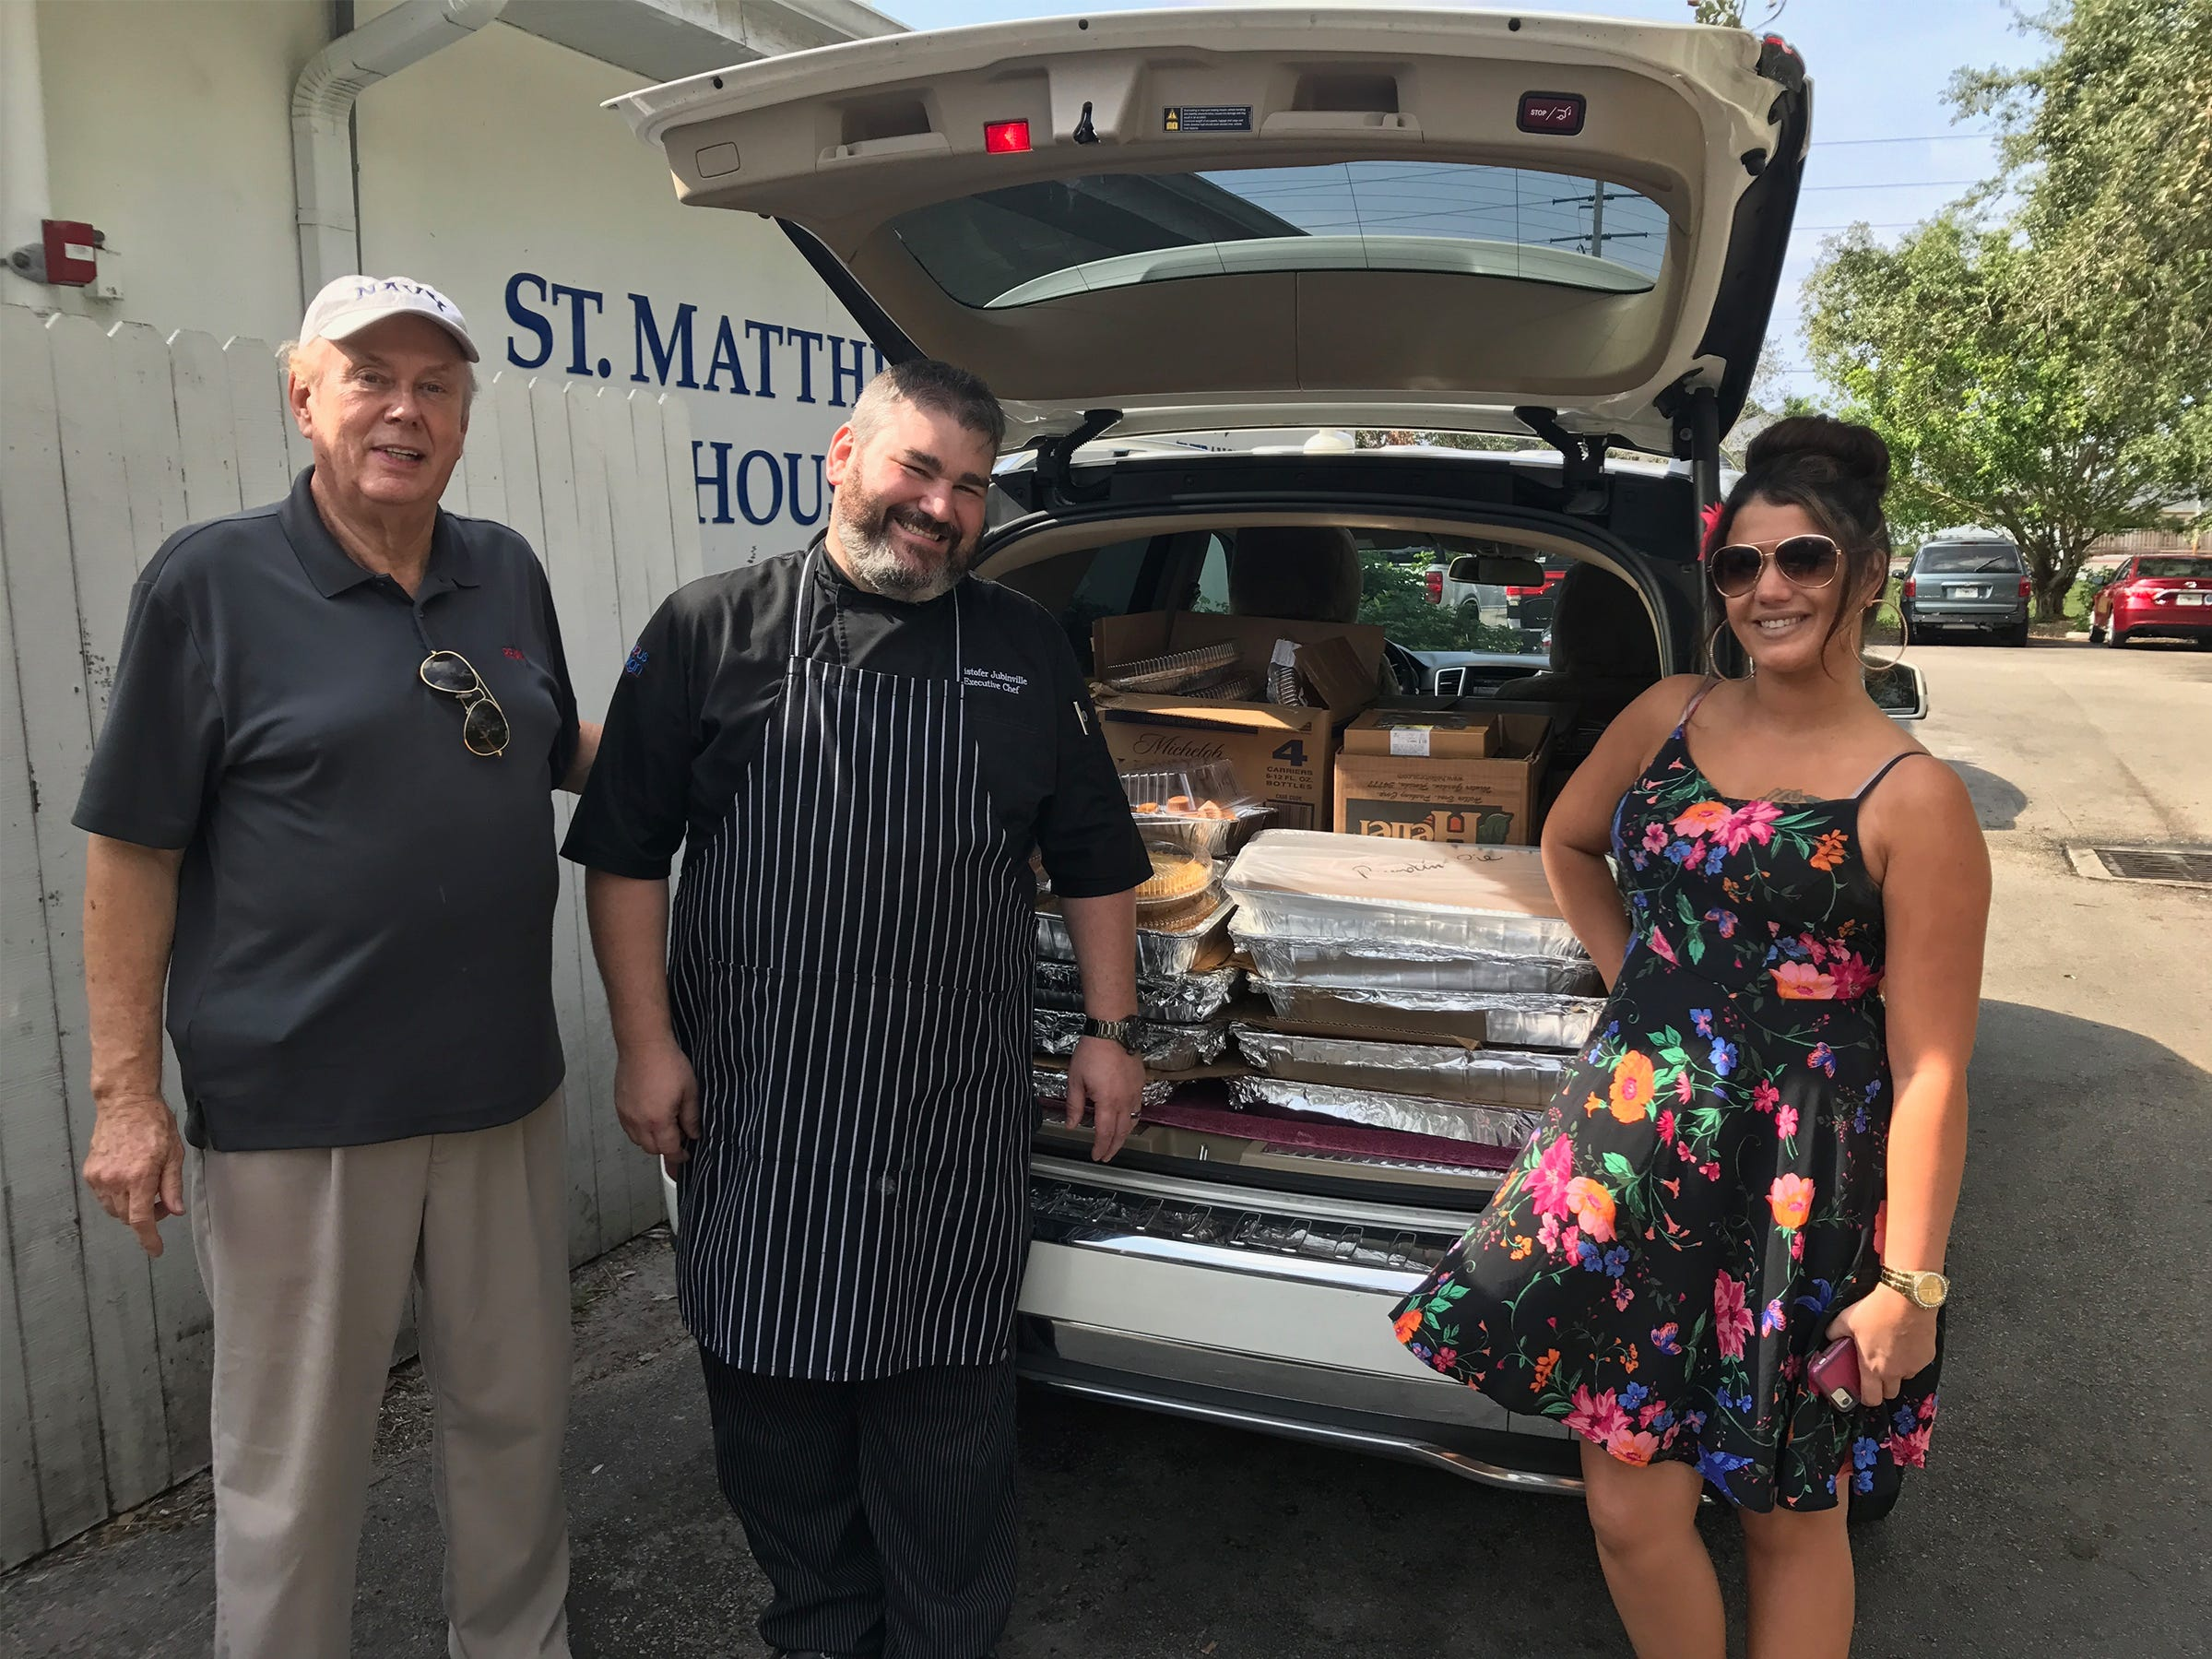 St. Matthew's House needs your help to provide Thanksgiving for thousands